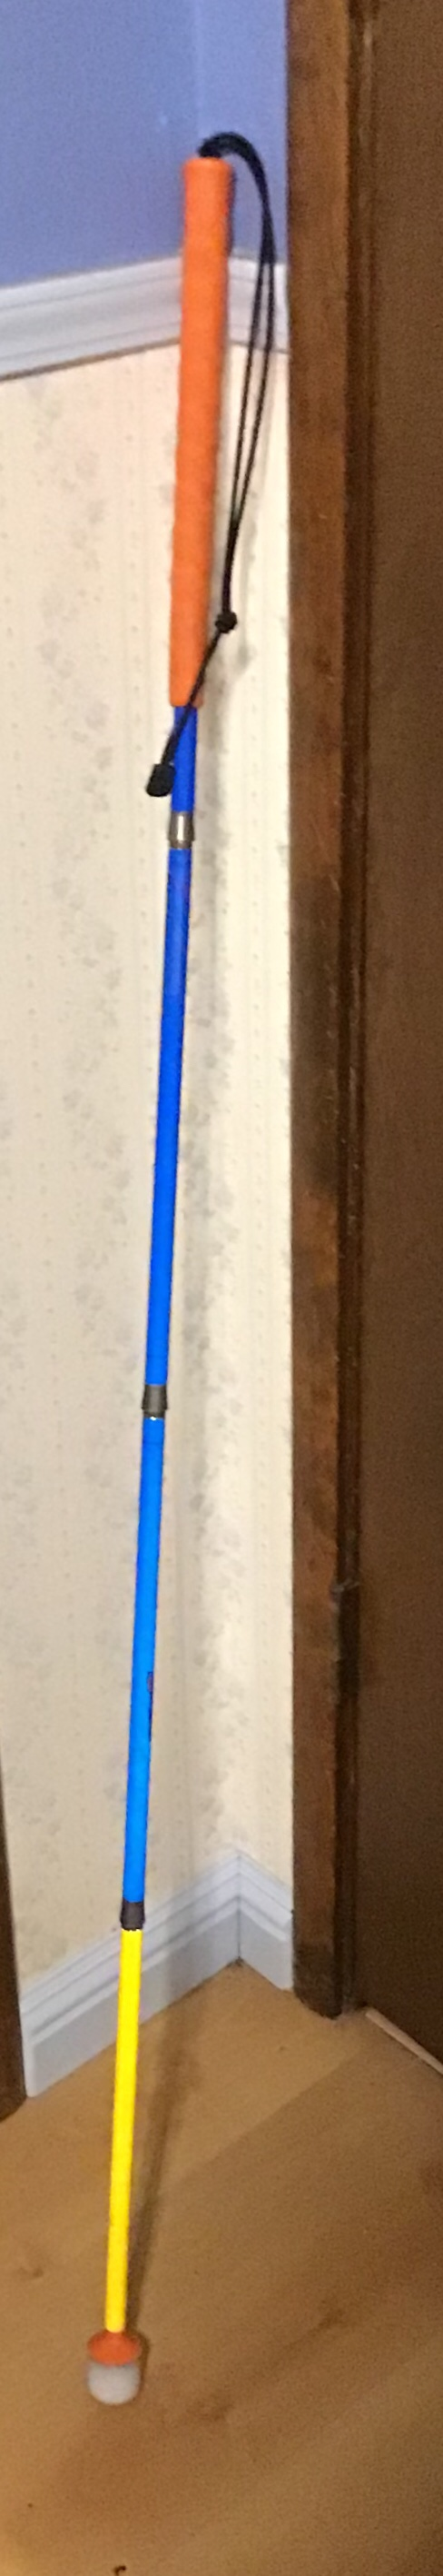 An orange, blue, and yellow cane leaning against a wall that is white on the bottom and blue on the top.